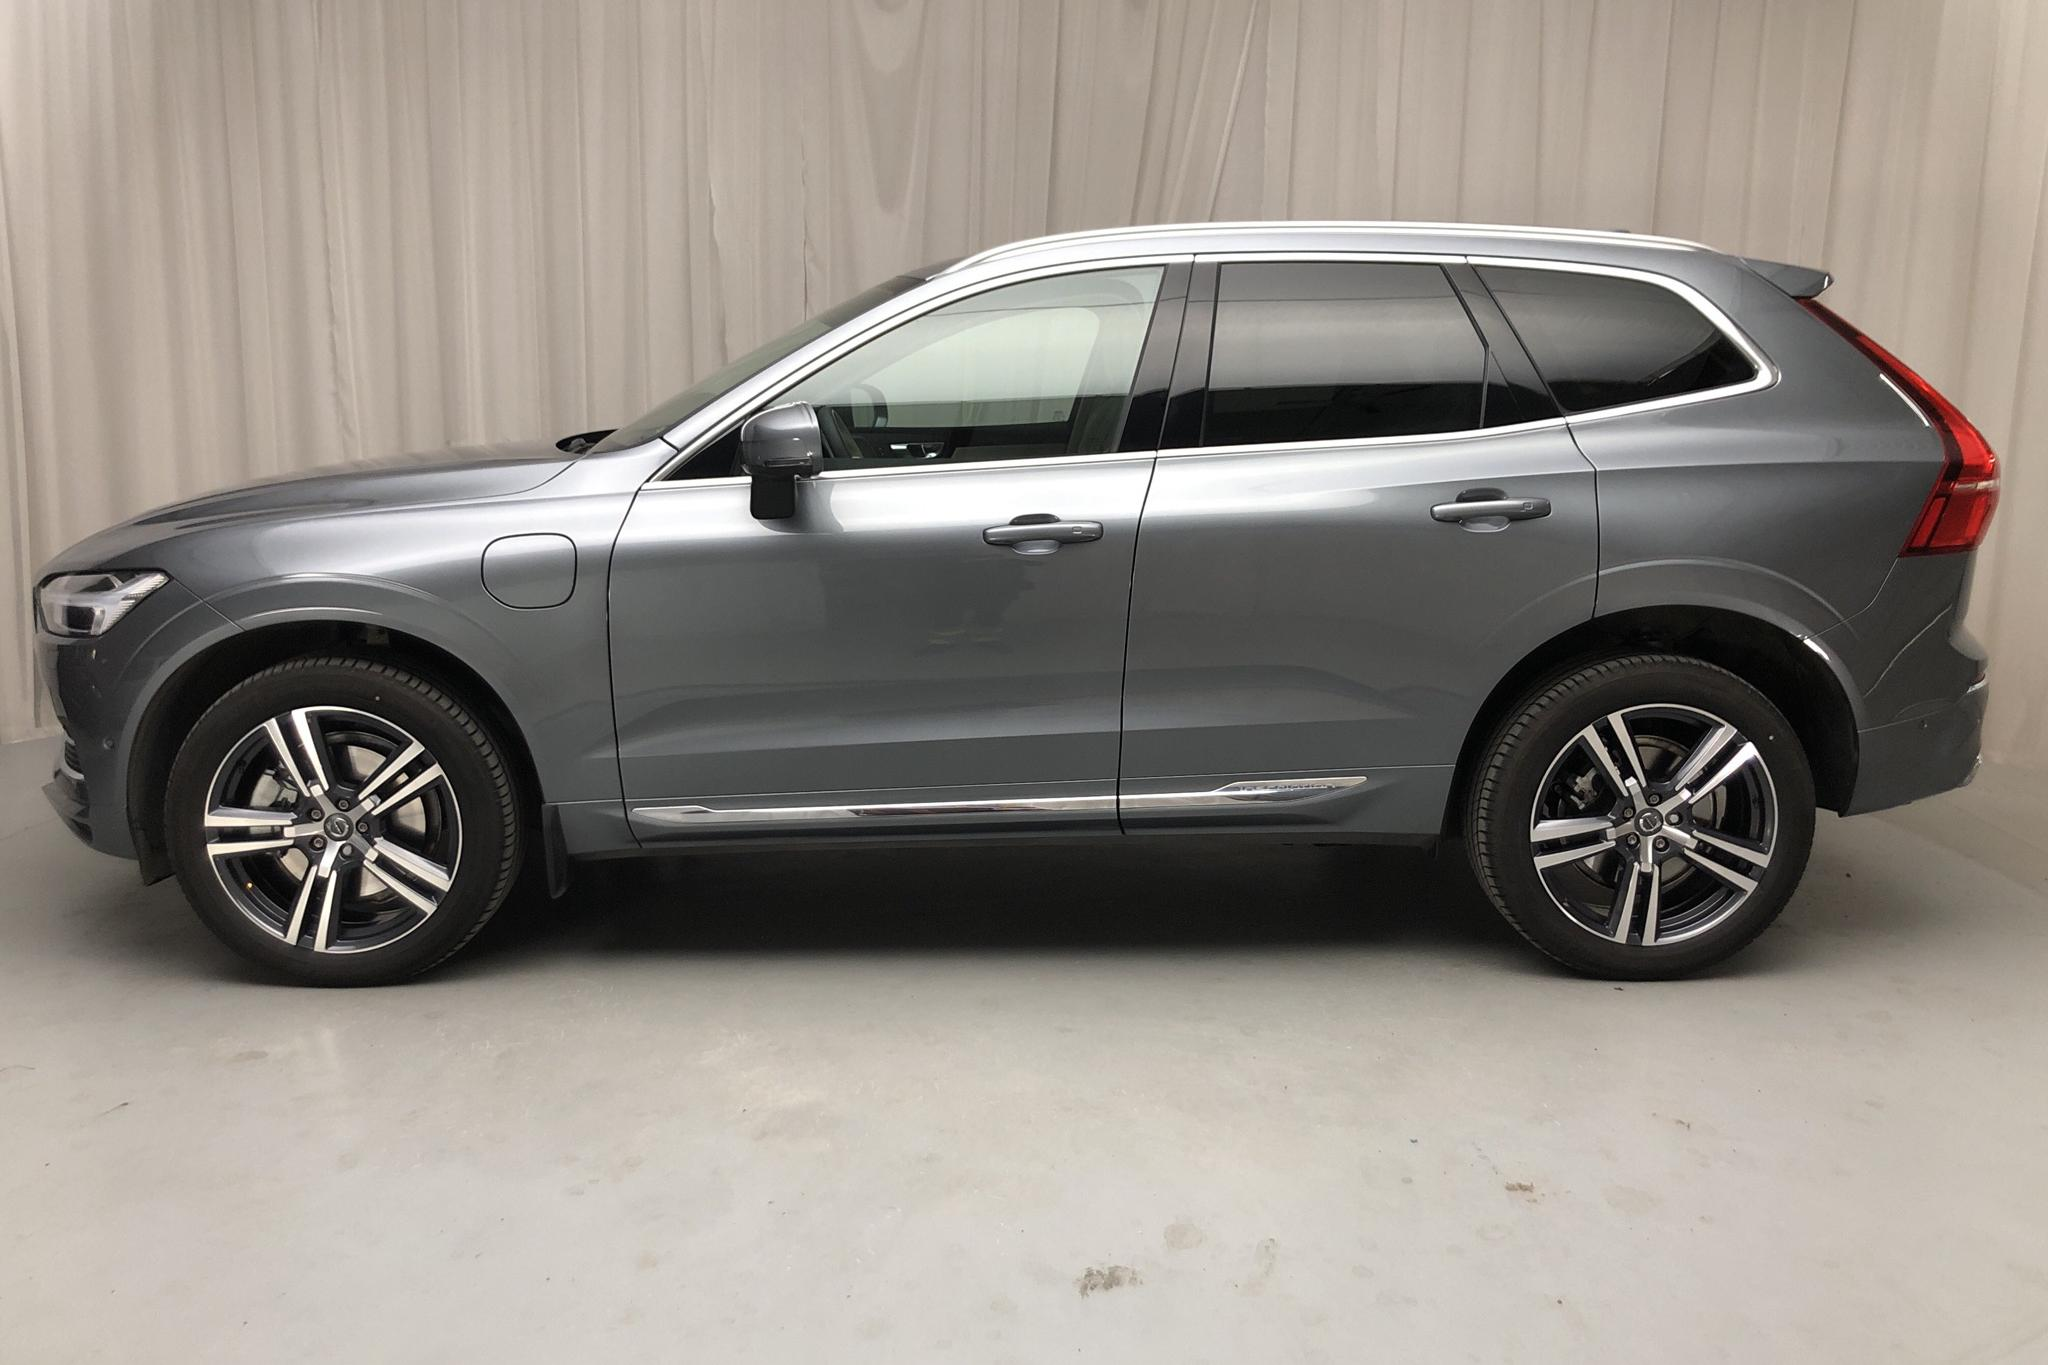 Volvo XC60 T8 AWD Twin Engine (390hk) - 9 270 km - Automatic - gray - 2020